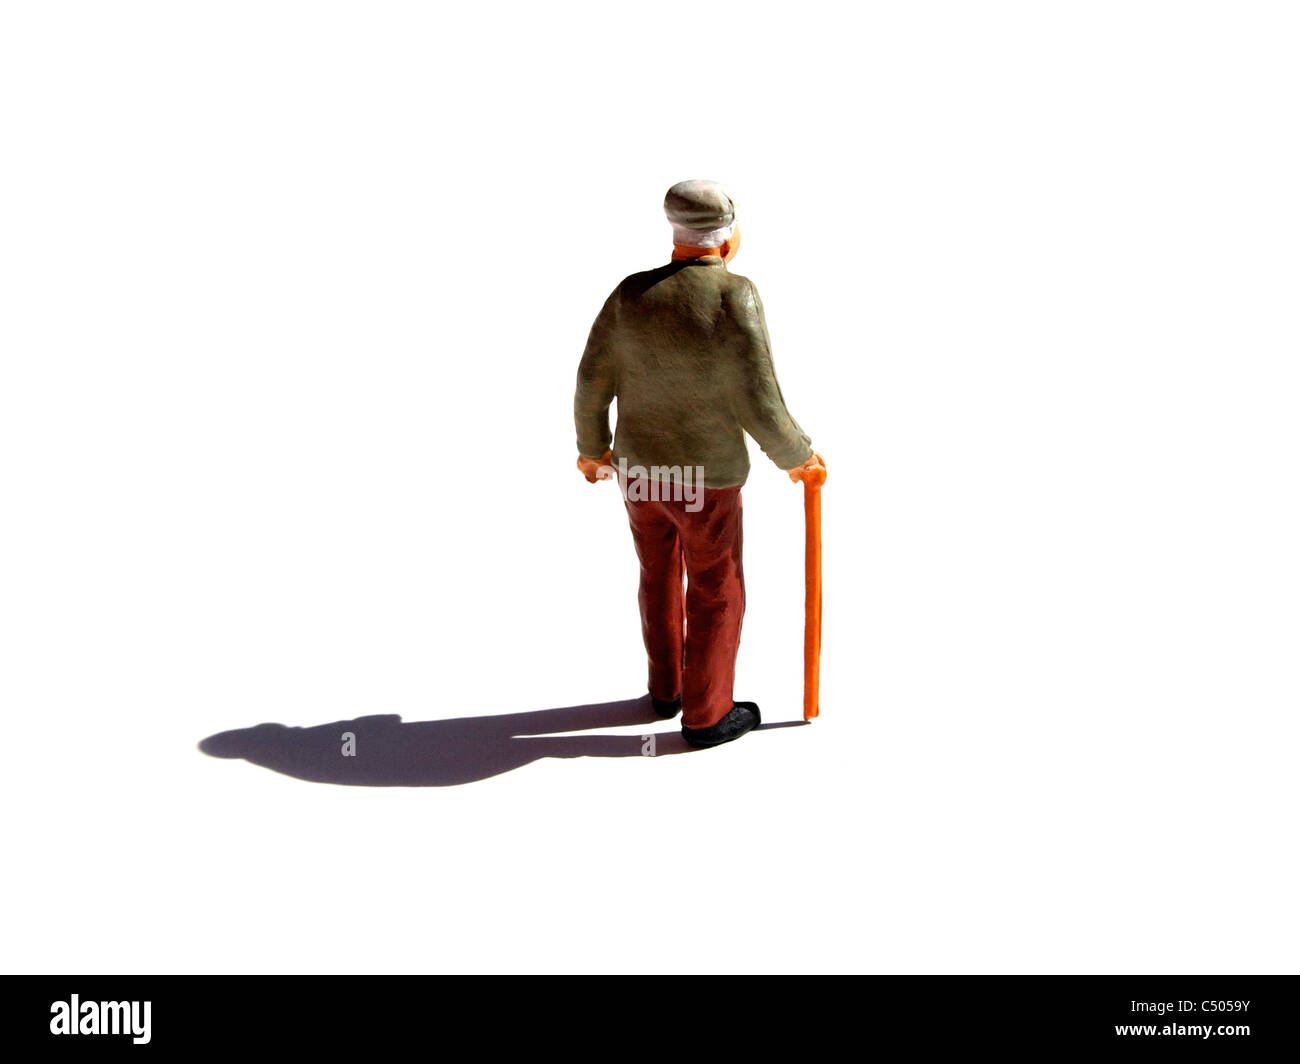 Old man figurine alone - loneliness, loss, retirement people concept - Stock Image